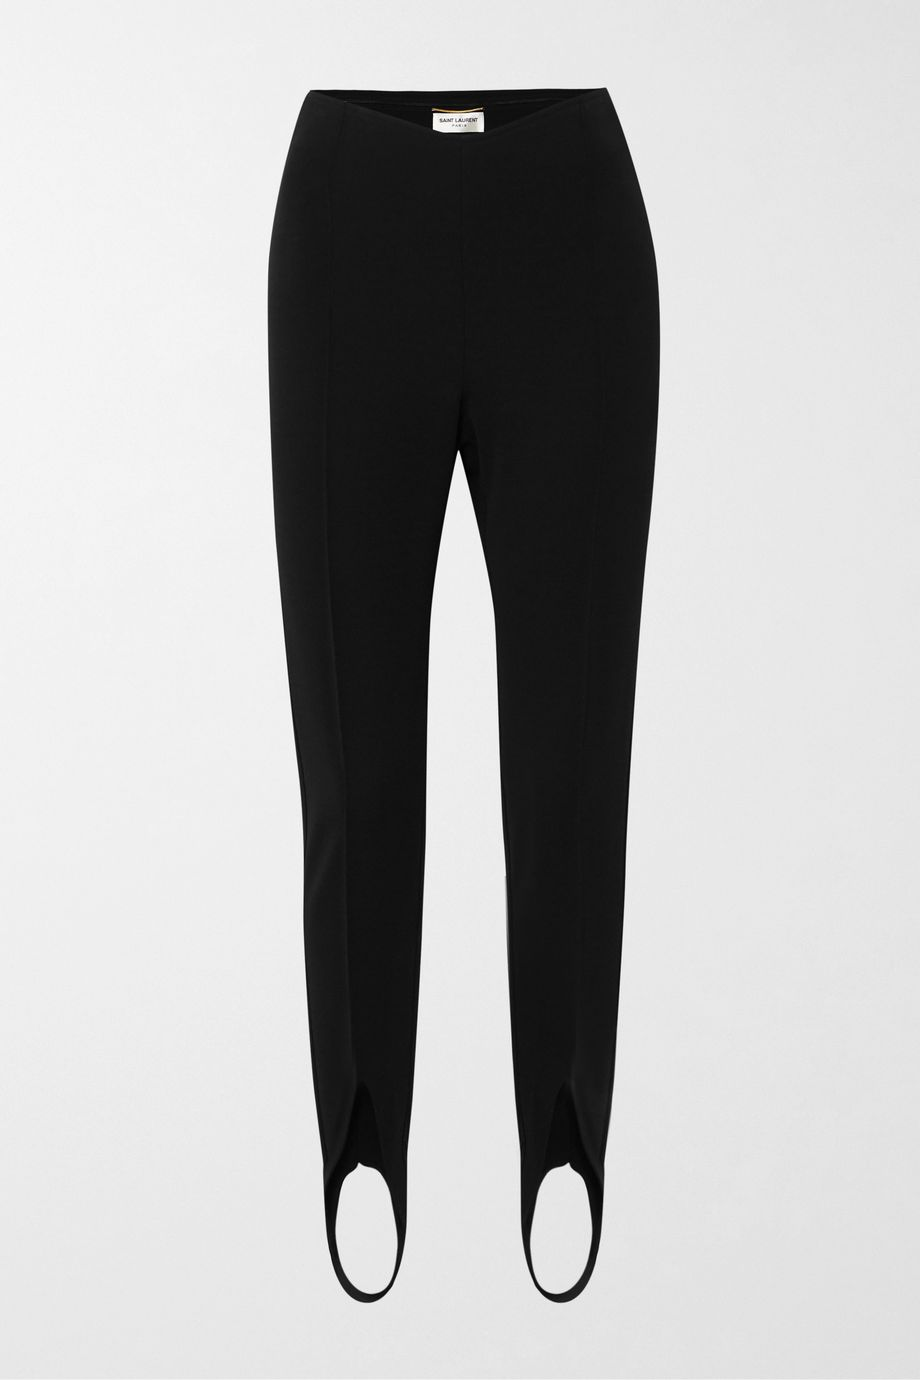 SAINT LAURENT Stretch-knit stirrup leggings